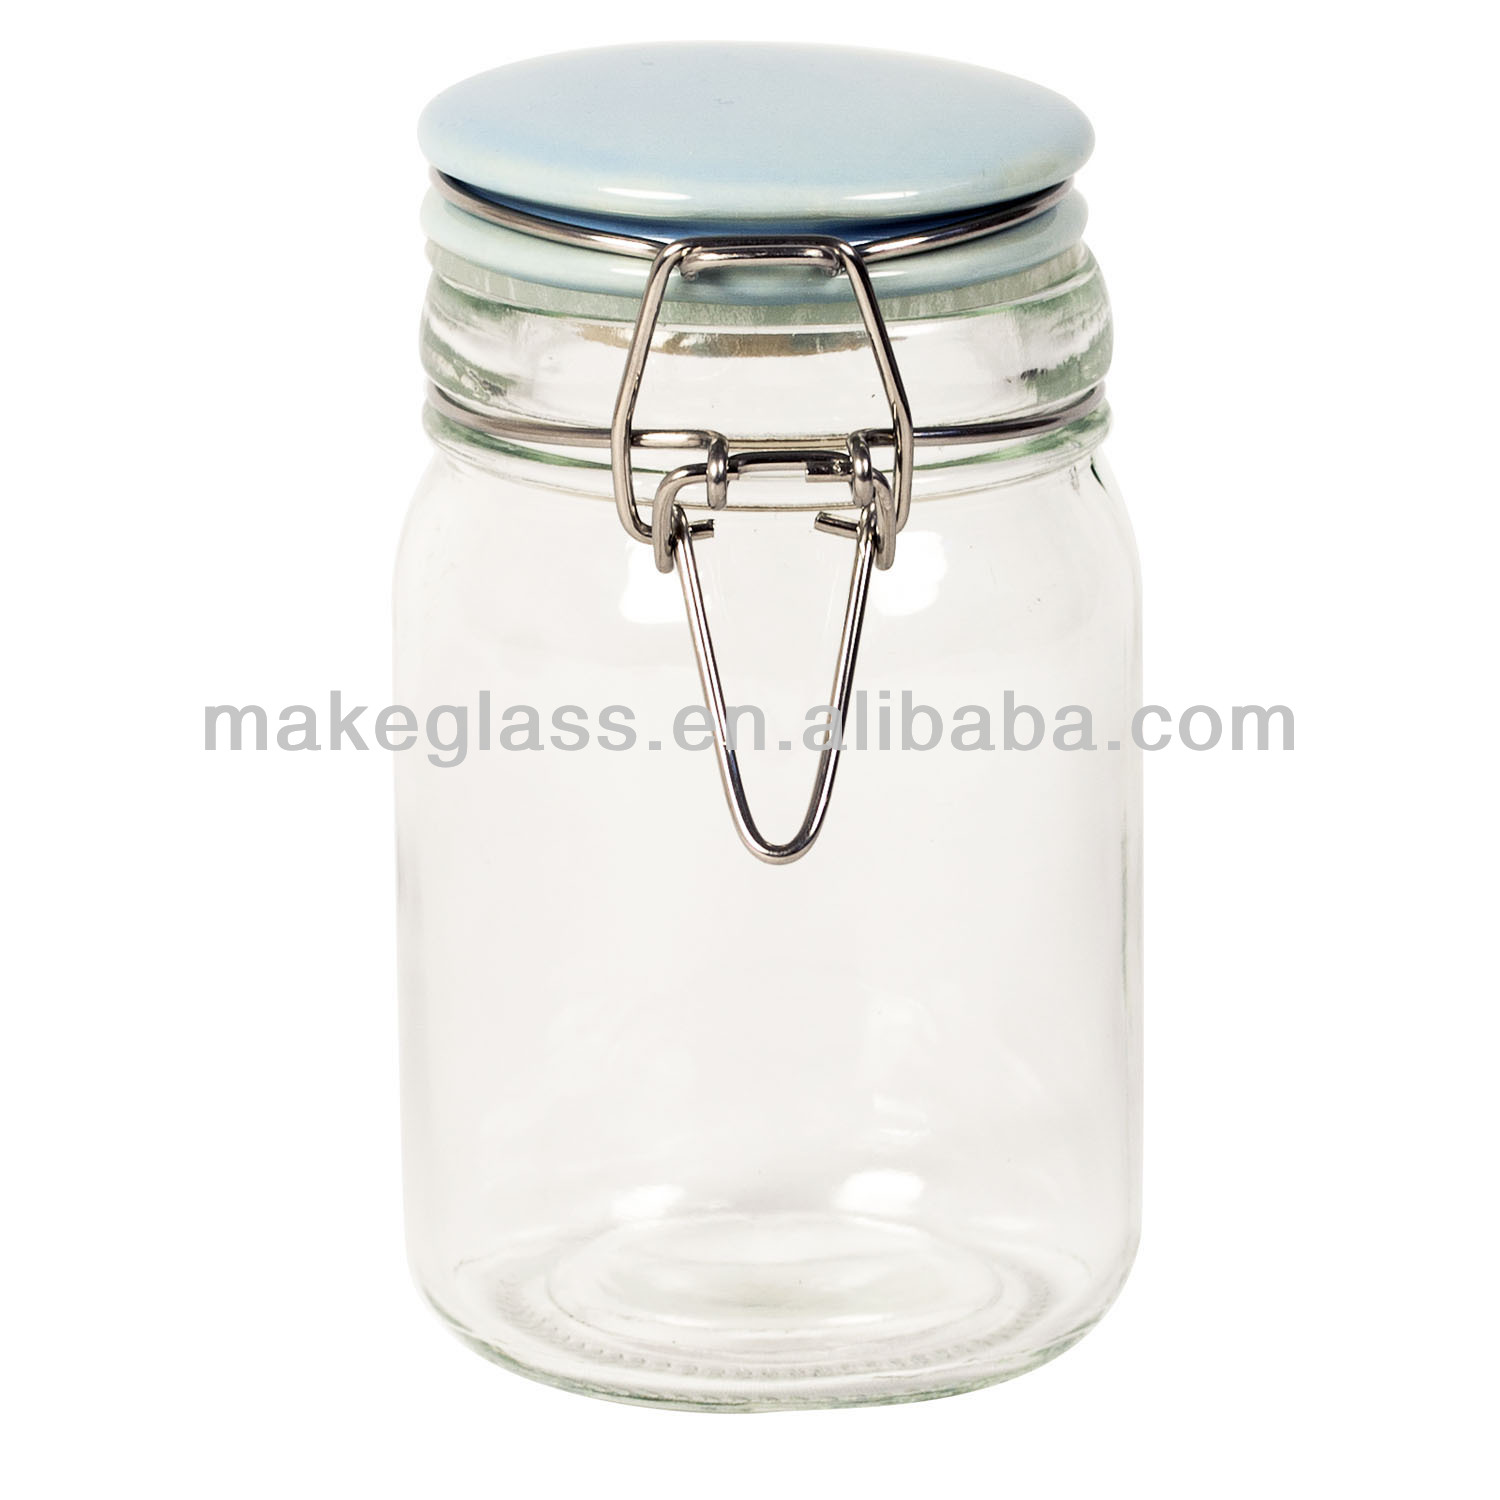 Glware Air Small Gl Jar With Ceramic Lid Clip And Mat Storage